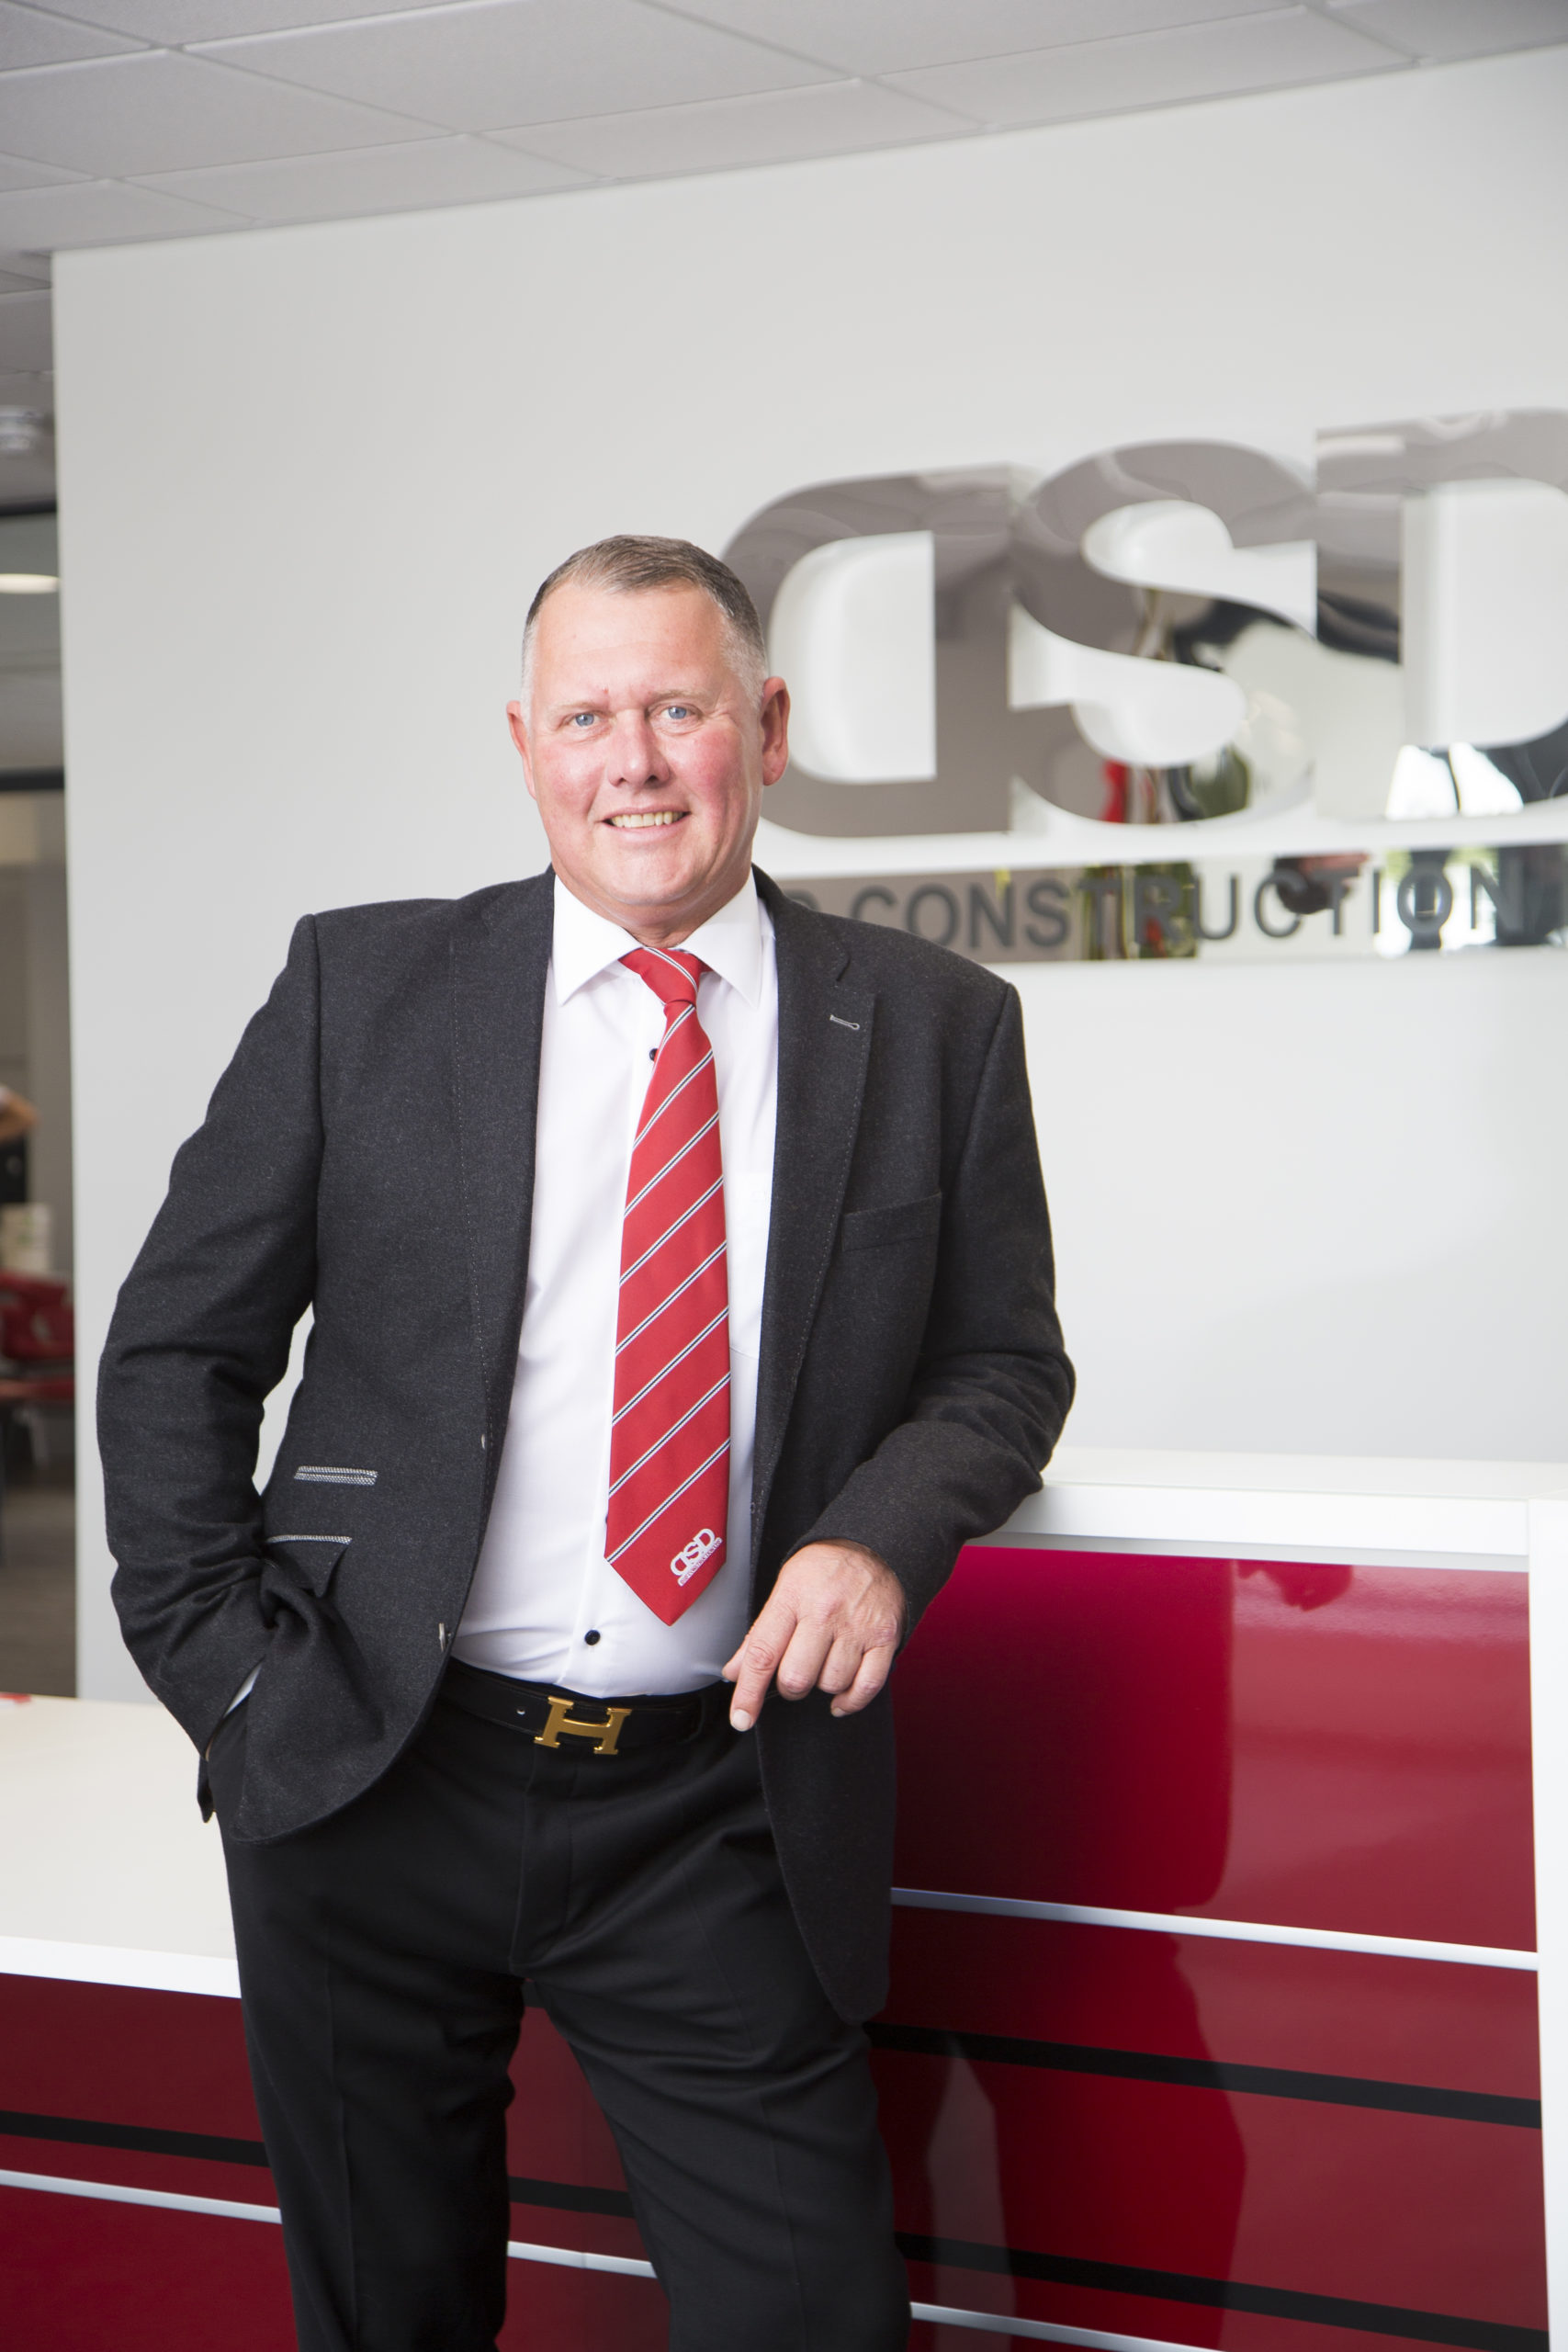 Managing director in a suit leaning in reception desk